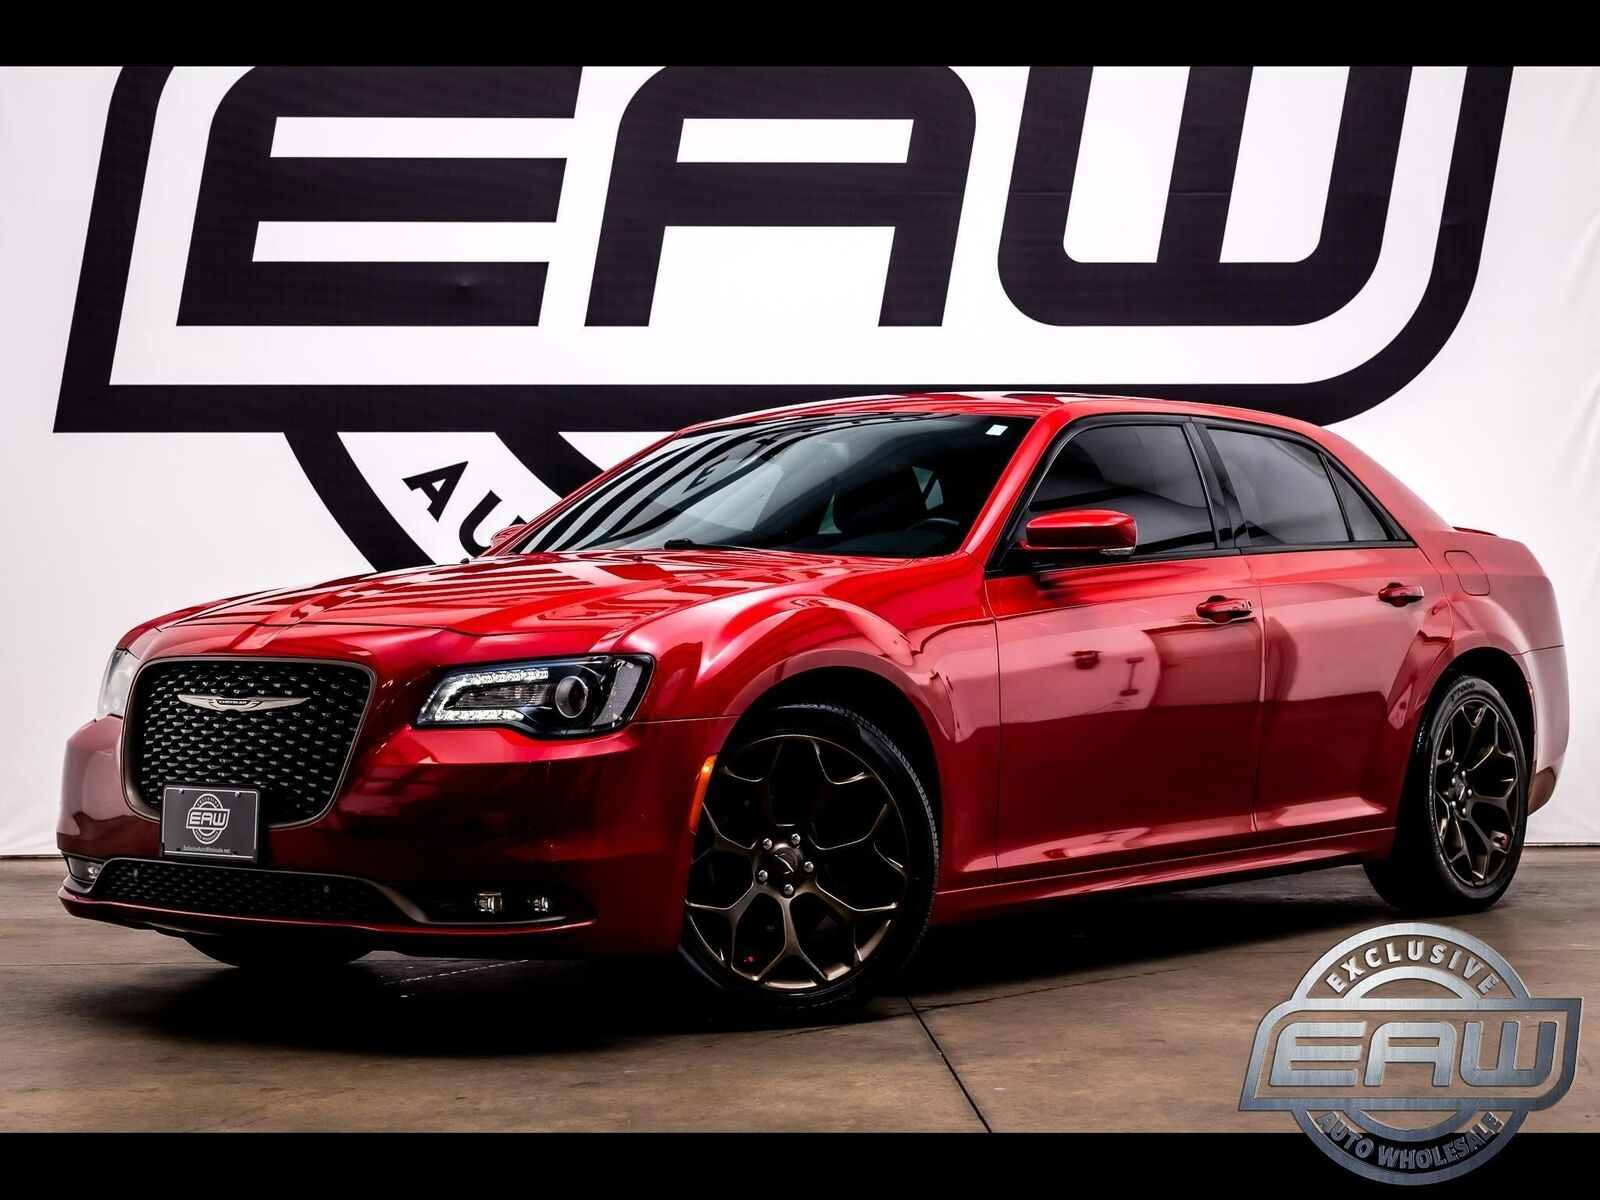 2016 Chrysler 300 Series 4dr Sdn 300S Alloy Edition RWD